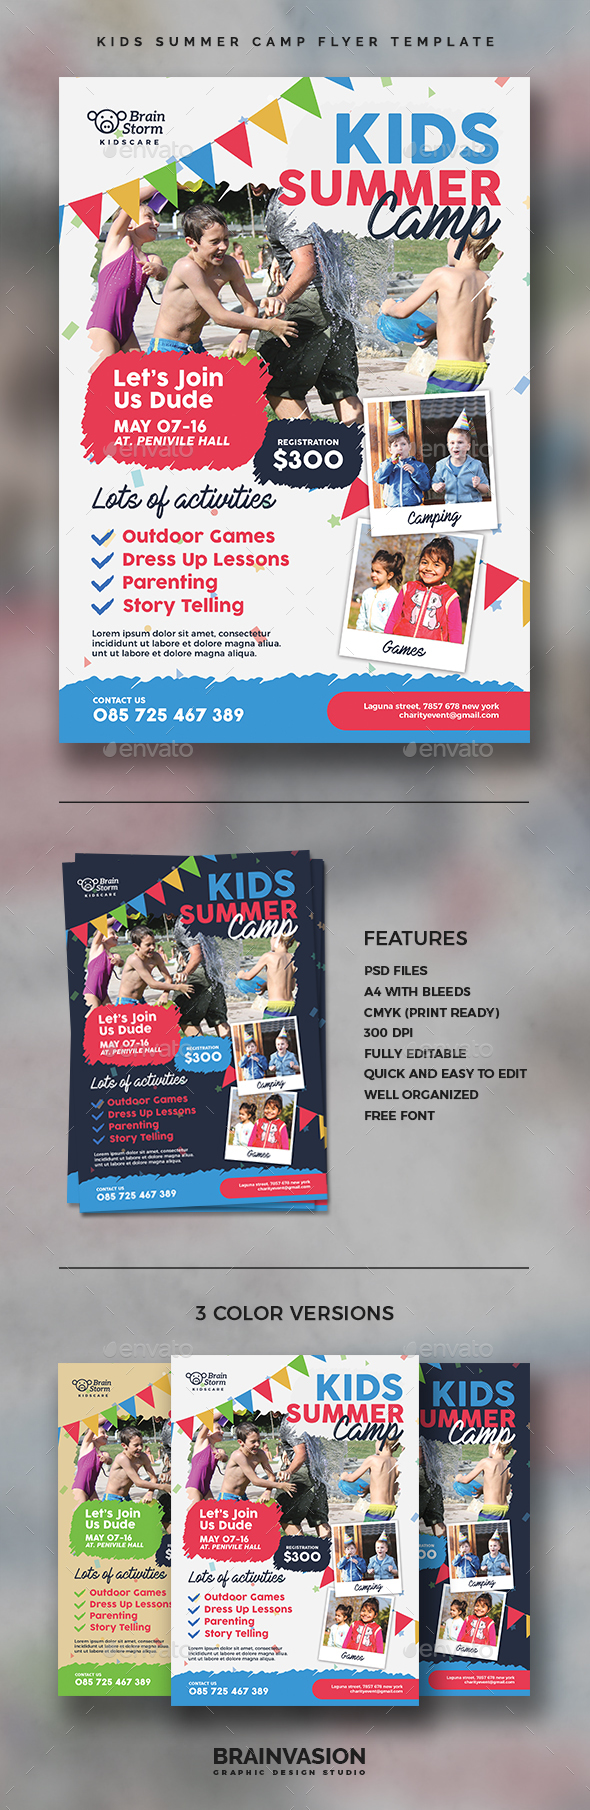 Kids Summer Camp Flyer Template - Corporate Flyers